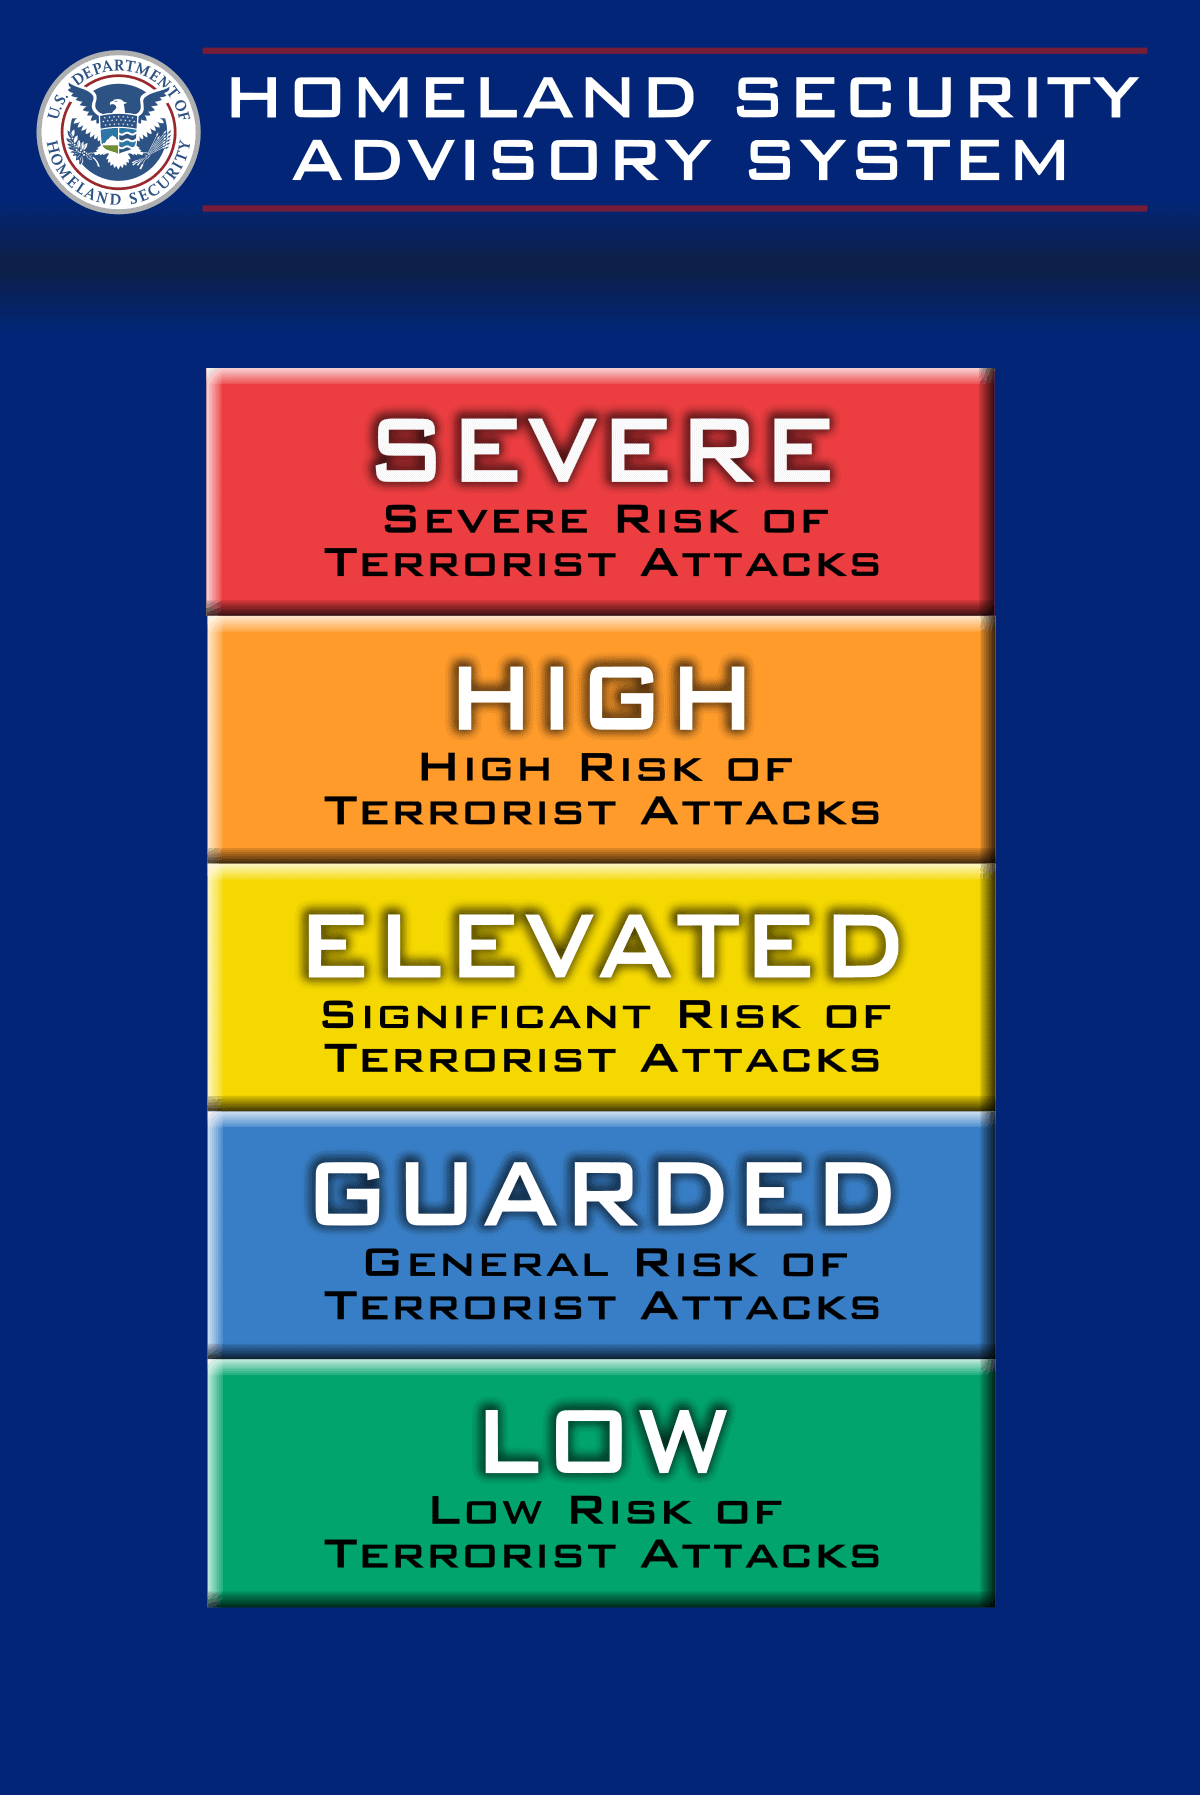 DHS color coded threat chart